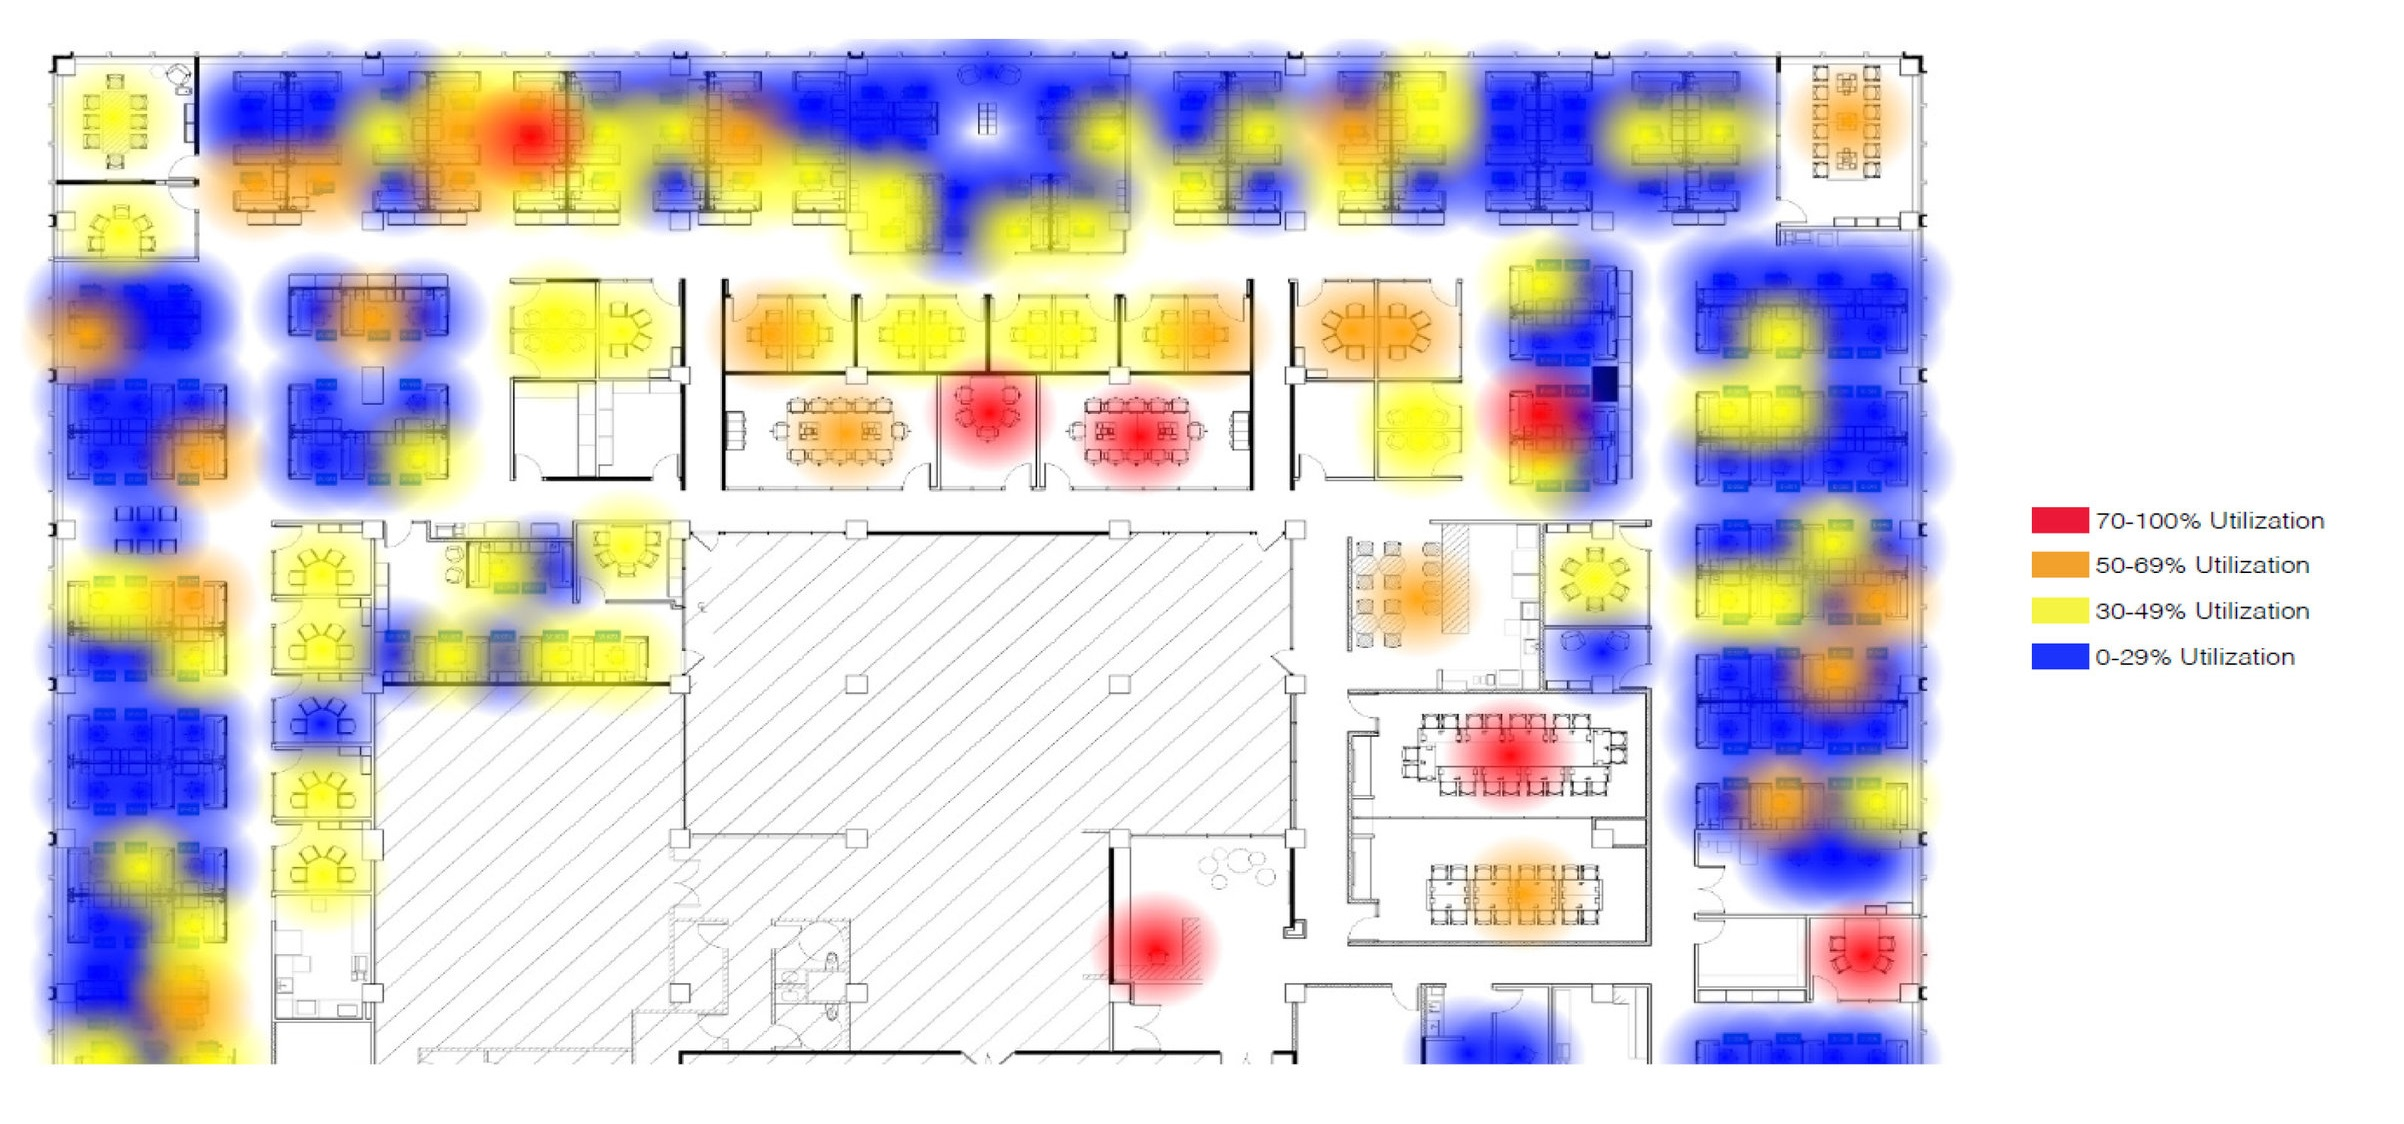 Heat maps show average utilization, either overall or by the hour of day.